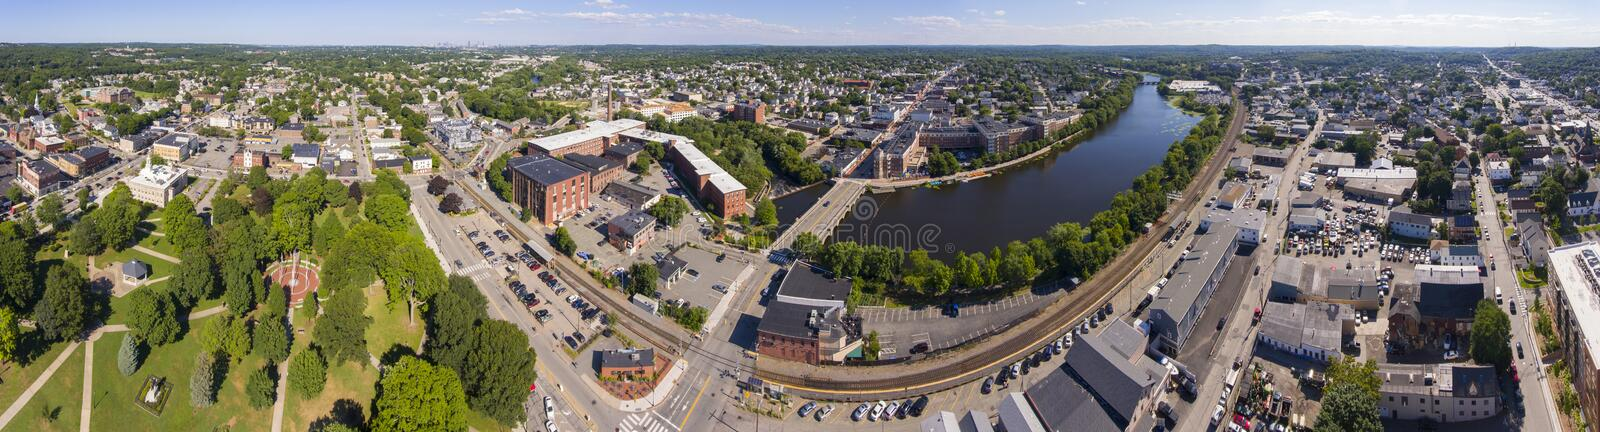 Charles River aerial view, Waltham, Massachusetts, USA. Charles River panorama aerial view in downtown Waltham, Massachusetts, MA, USA royalty free stock photography